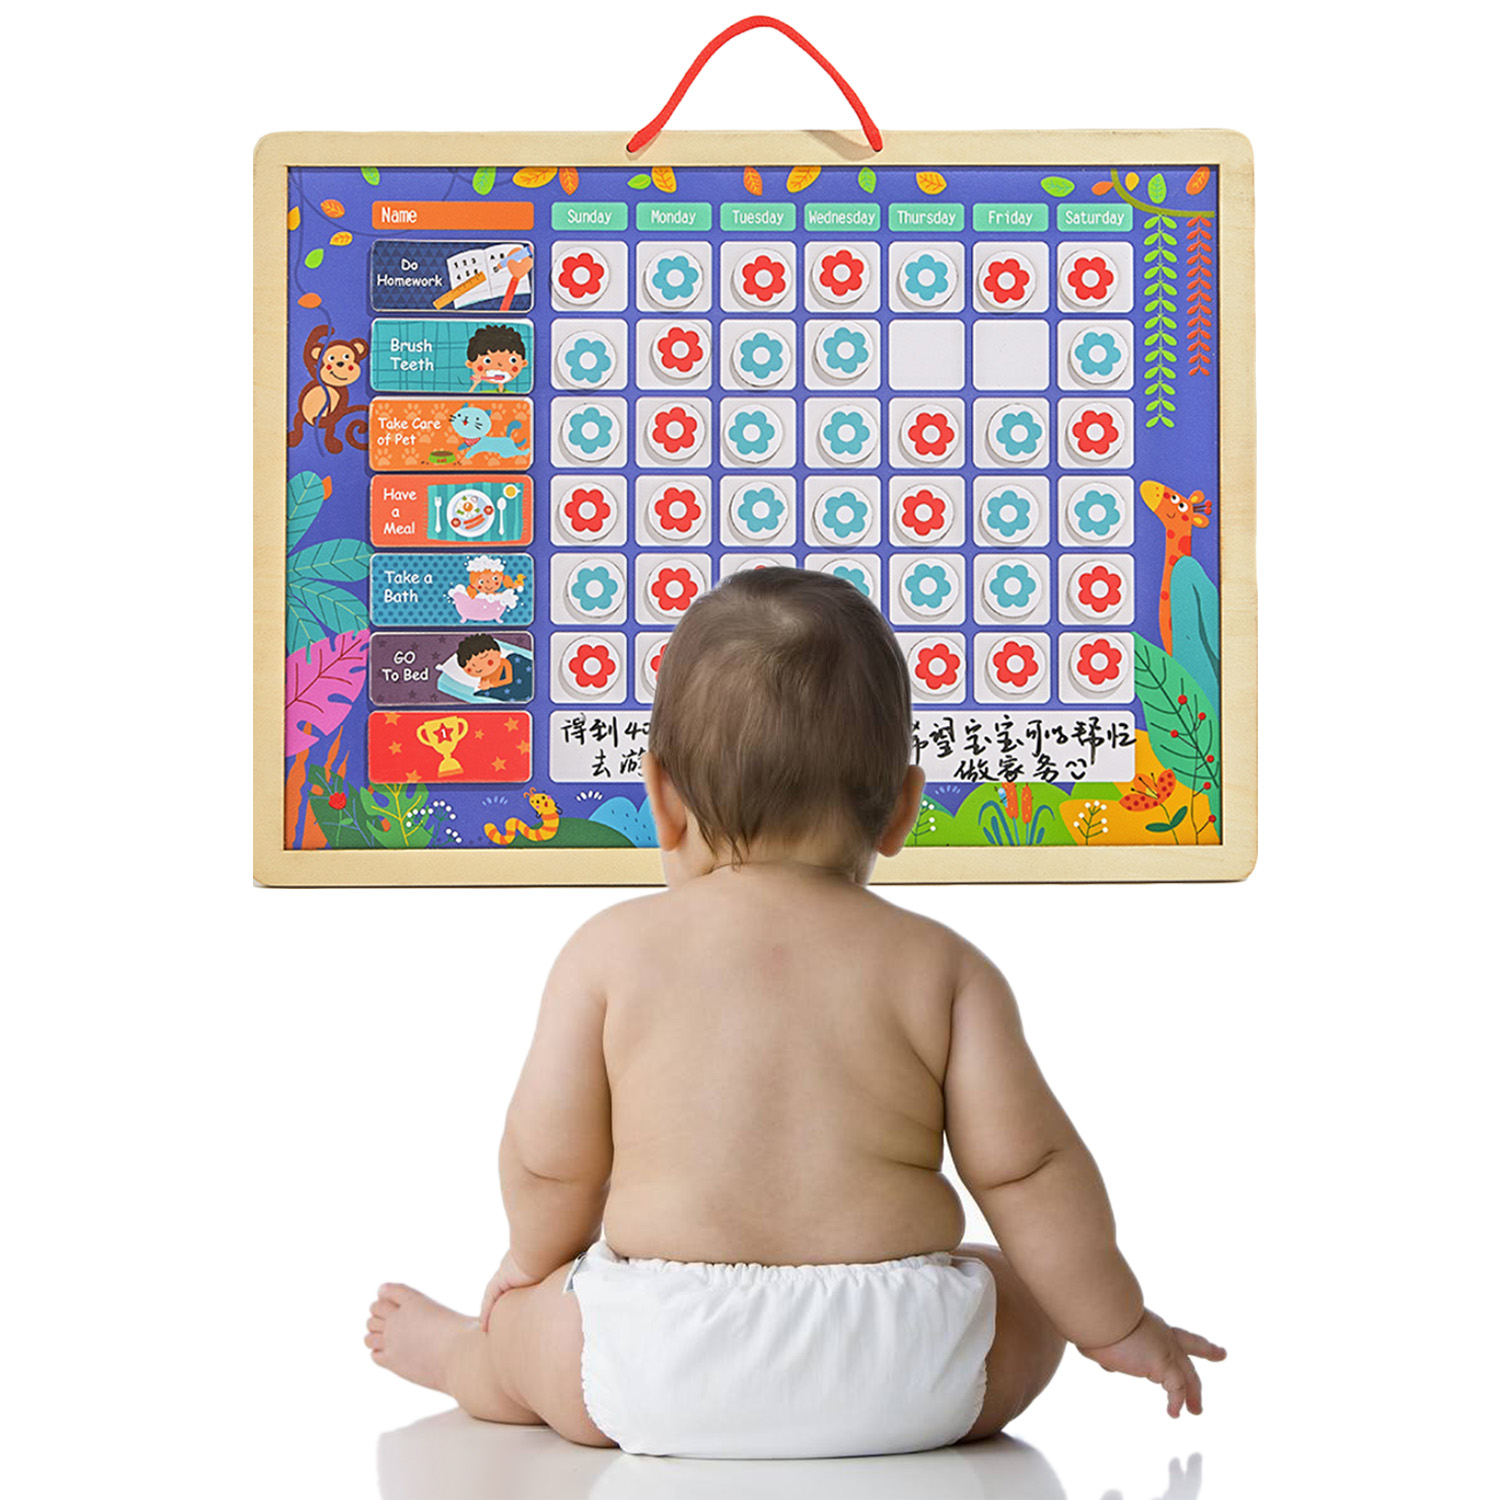 Besegad Magnetic Reward Activity Responsibility Chart Calendar Schedule Educational Learning Toys for Kids Children Target BoardBesegad Magnetic Reward Activity Responsibility Chart Calendar Schedule Educational Learning Toys for Kids Children Target Board